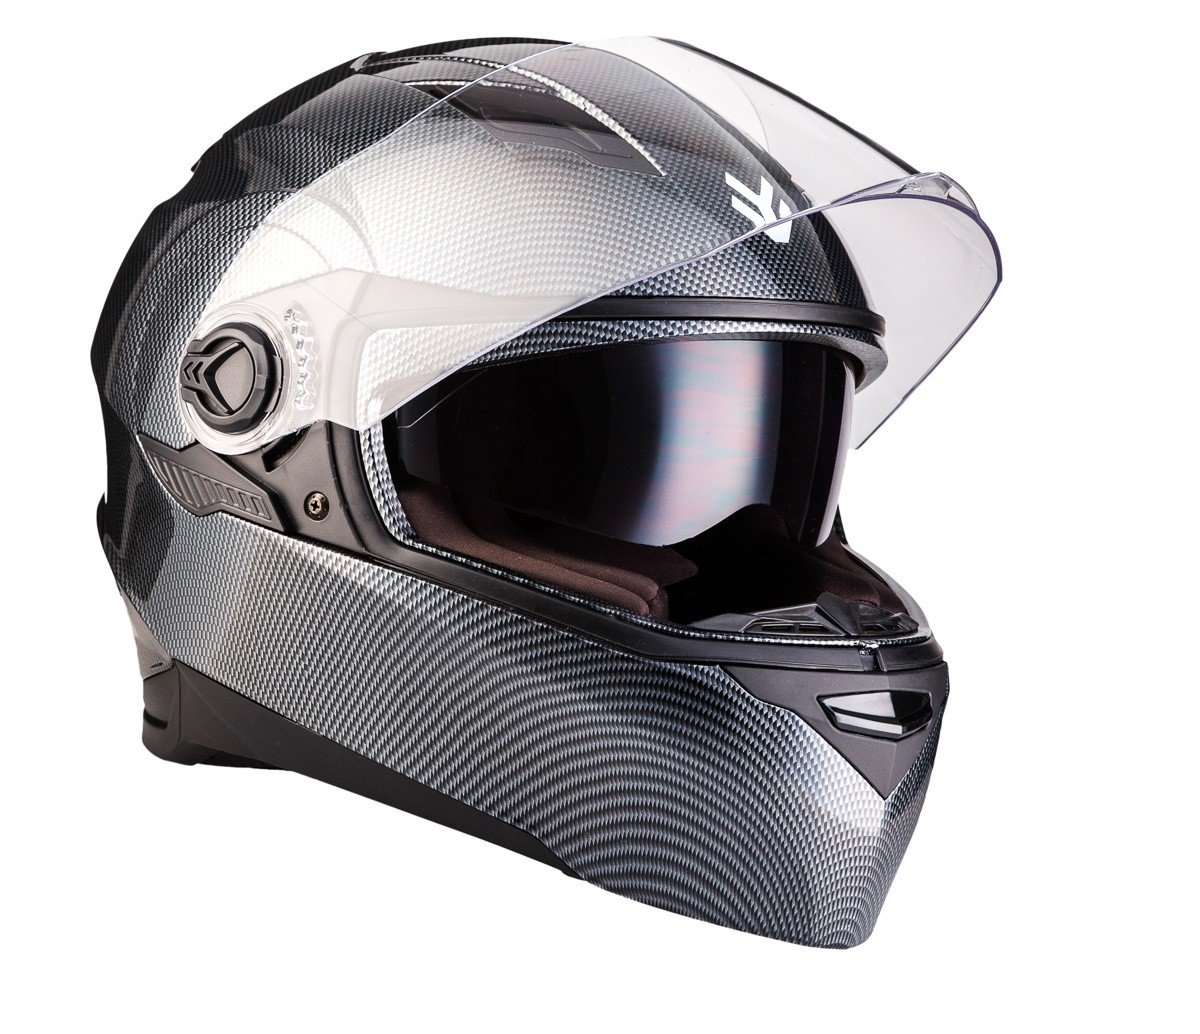 "Armor · AF-77 ""Carbon"" (gray) · Casco moto Integrale · Scooter Urban Cruiser FULL-FACE HELMET motocicleta · ECE certificado · Separate Visors · ..."